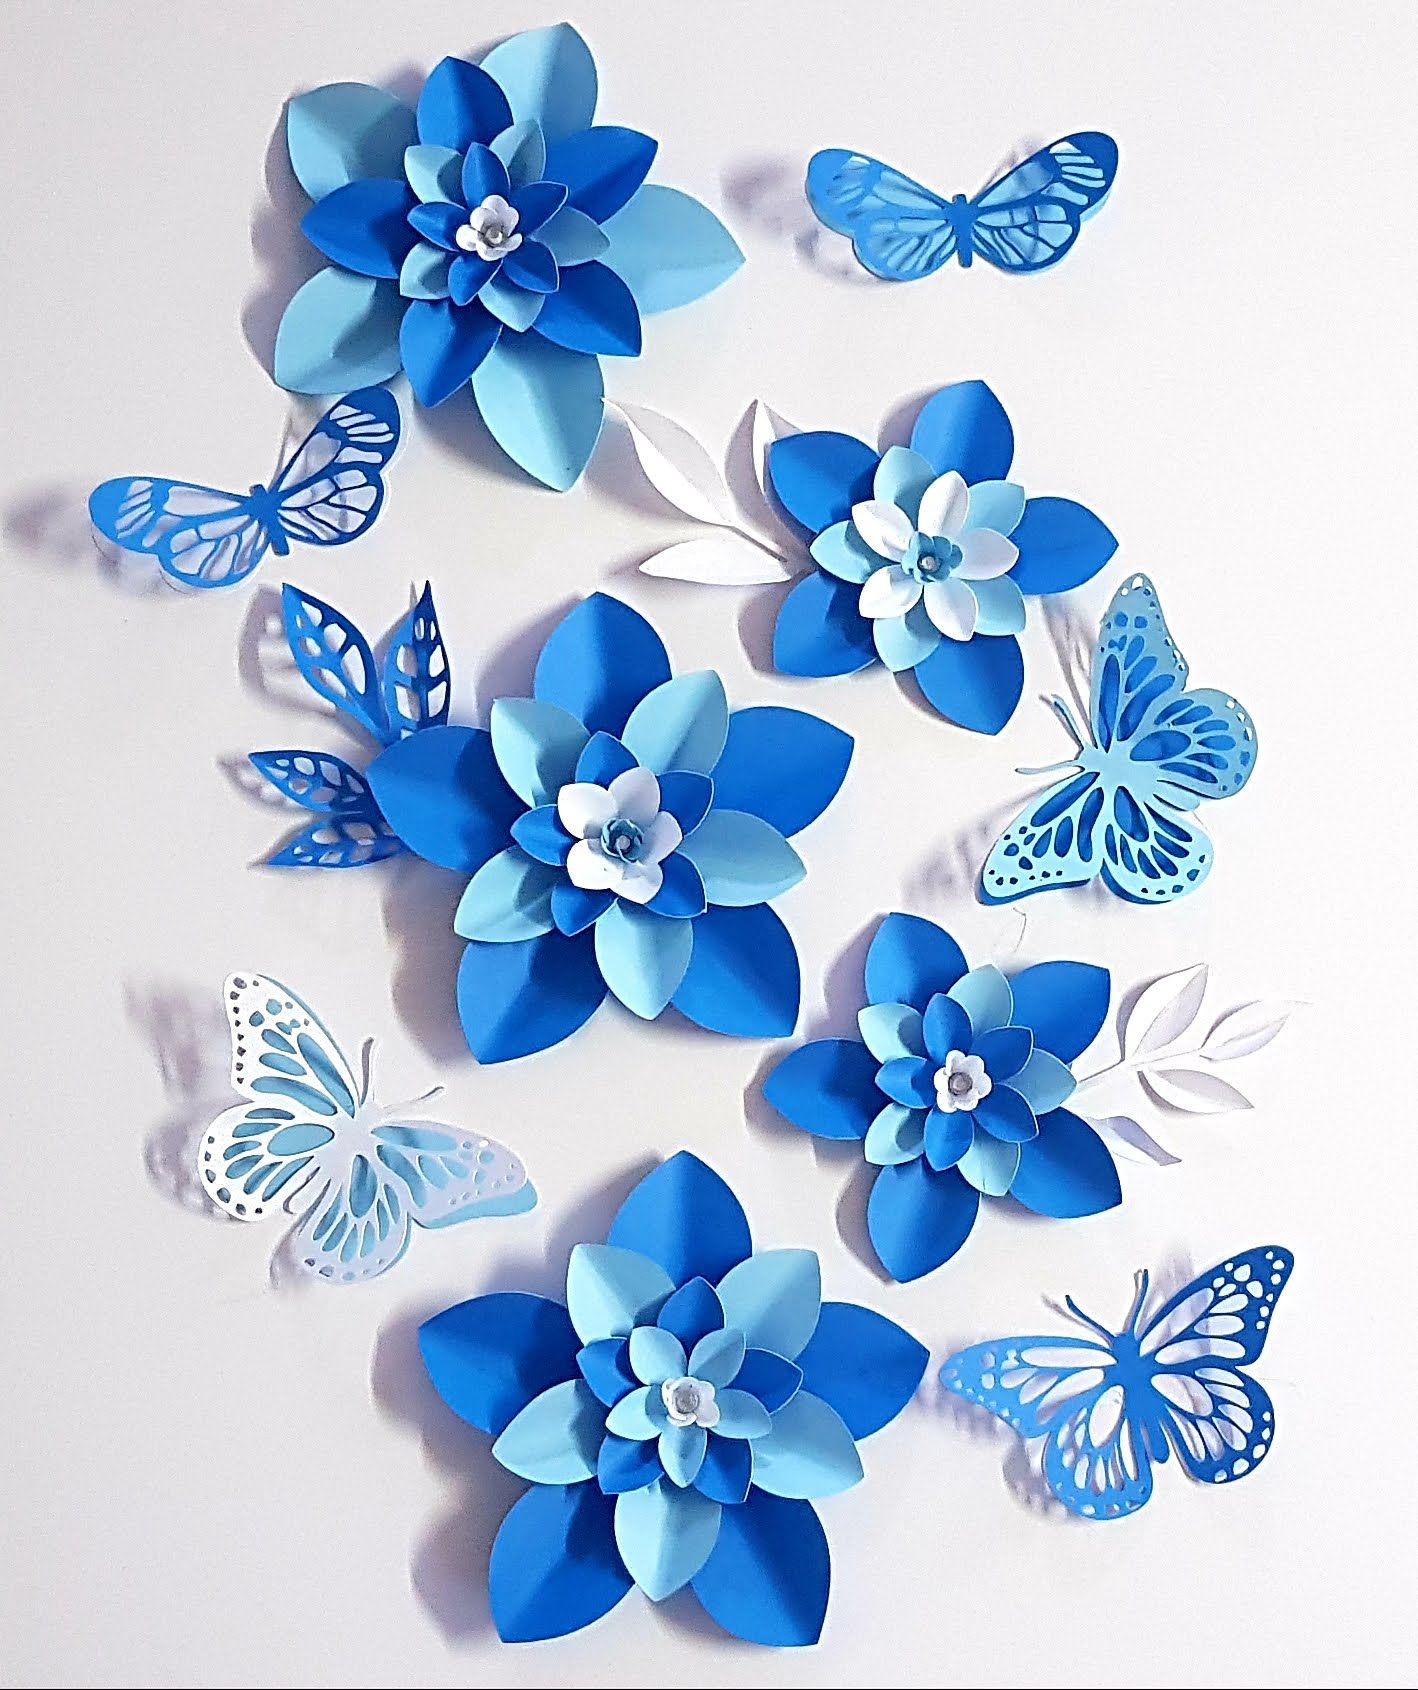 Paper Flower Table Toppers Or Filler Flowers And Butterflies For Your Paper Flowers Display Backdrop Paper Flower Tutorial Paper Flowers Diy Paper Flower Decor